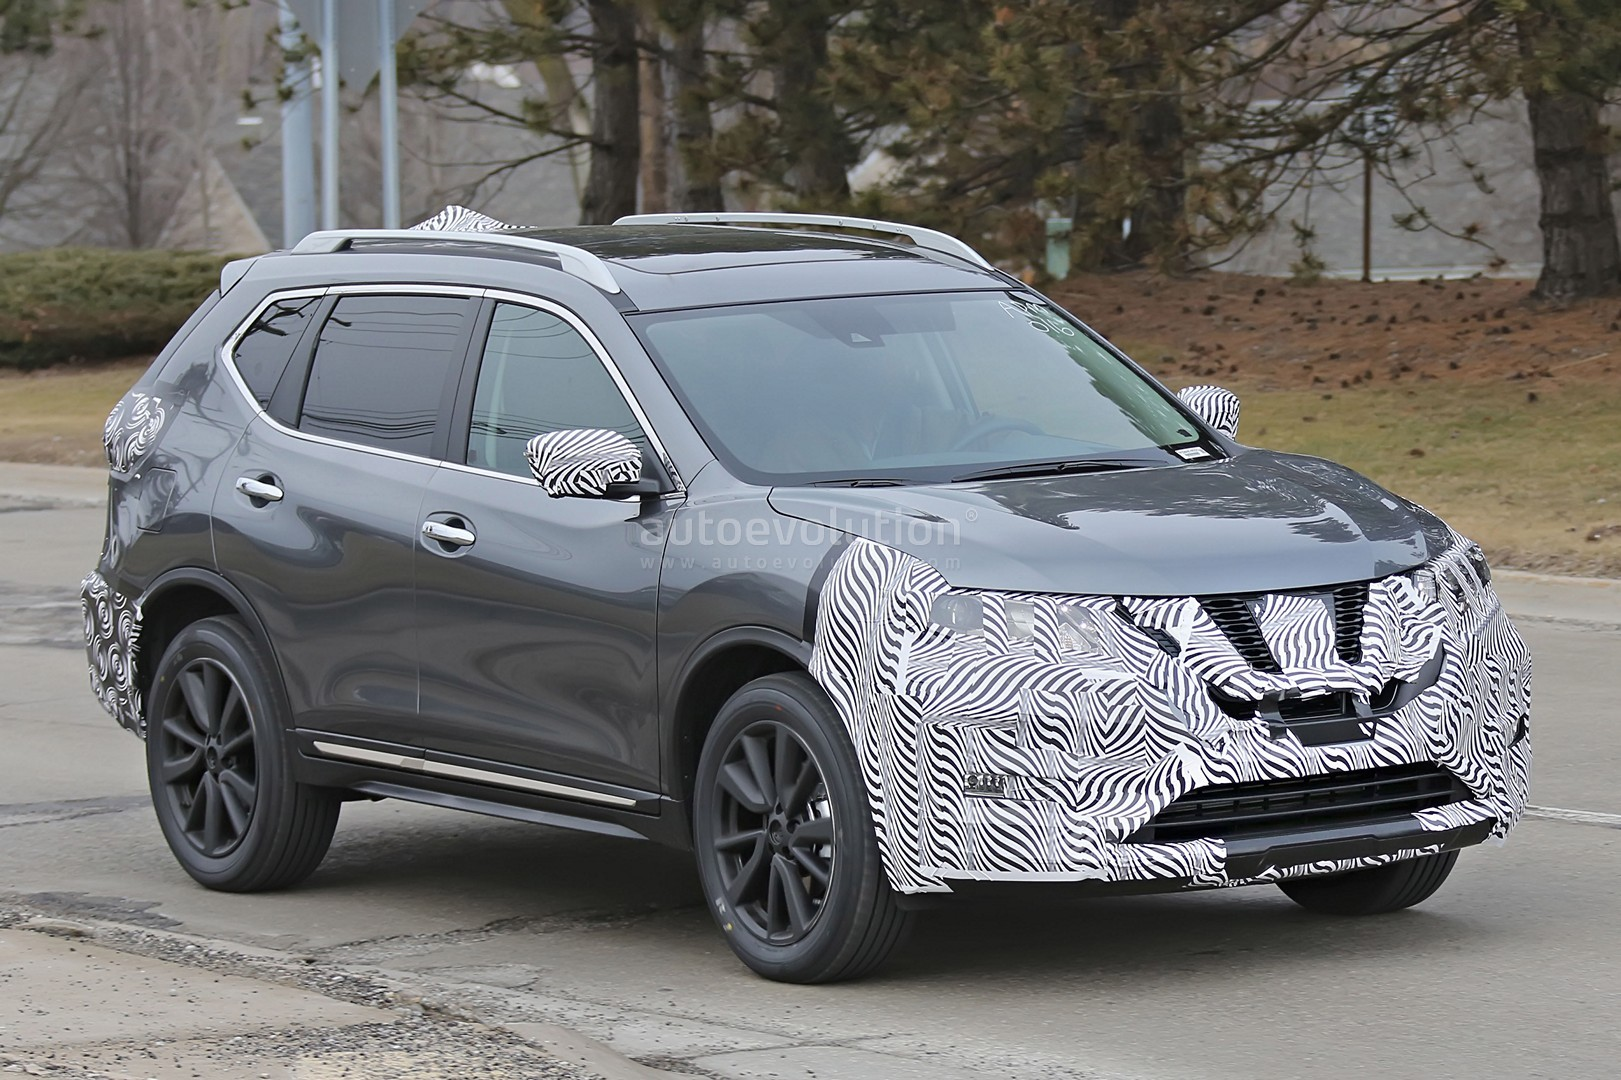 2017 nissan rogue spied with cosmetic updates autoevolution. Black Bedroom Furniture Sets. Home Design Ideas